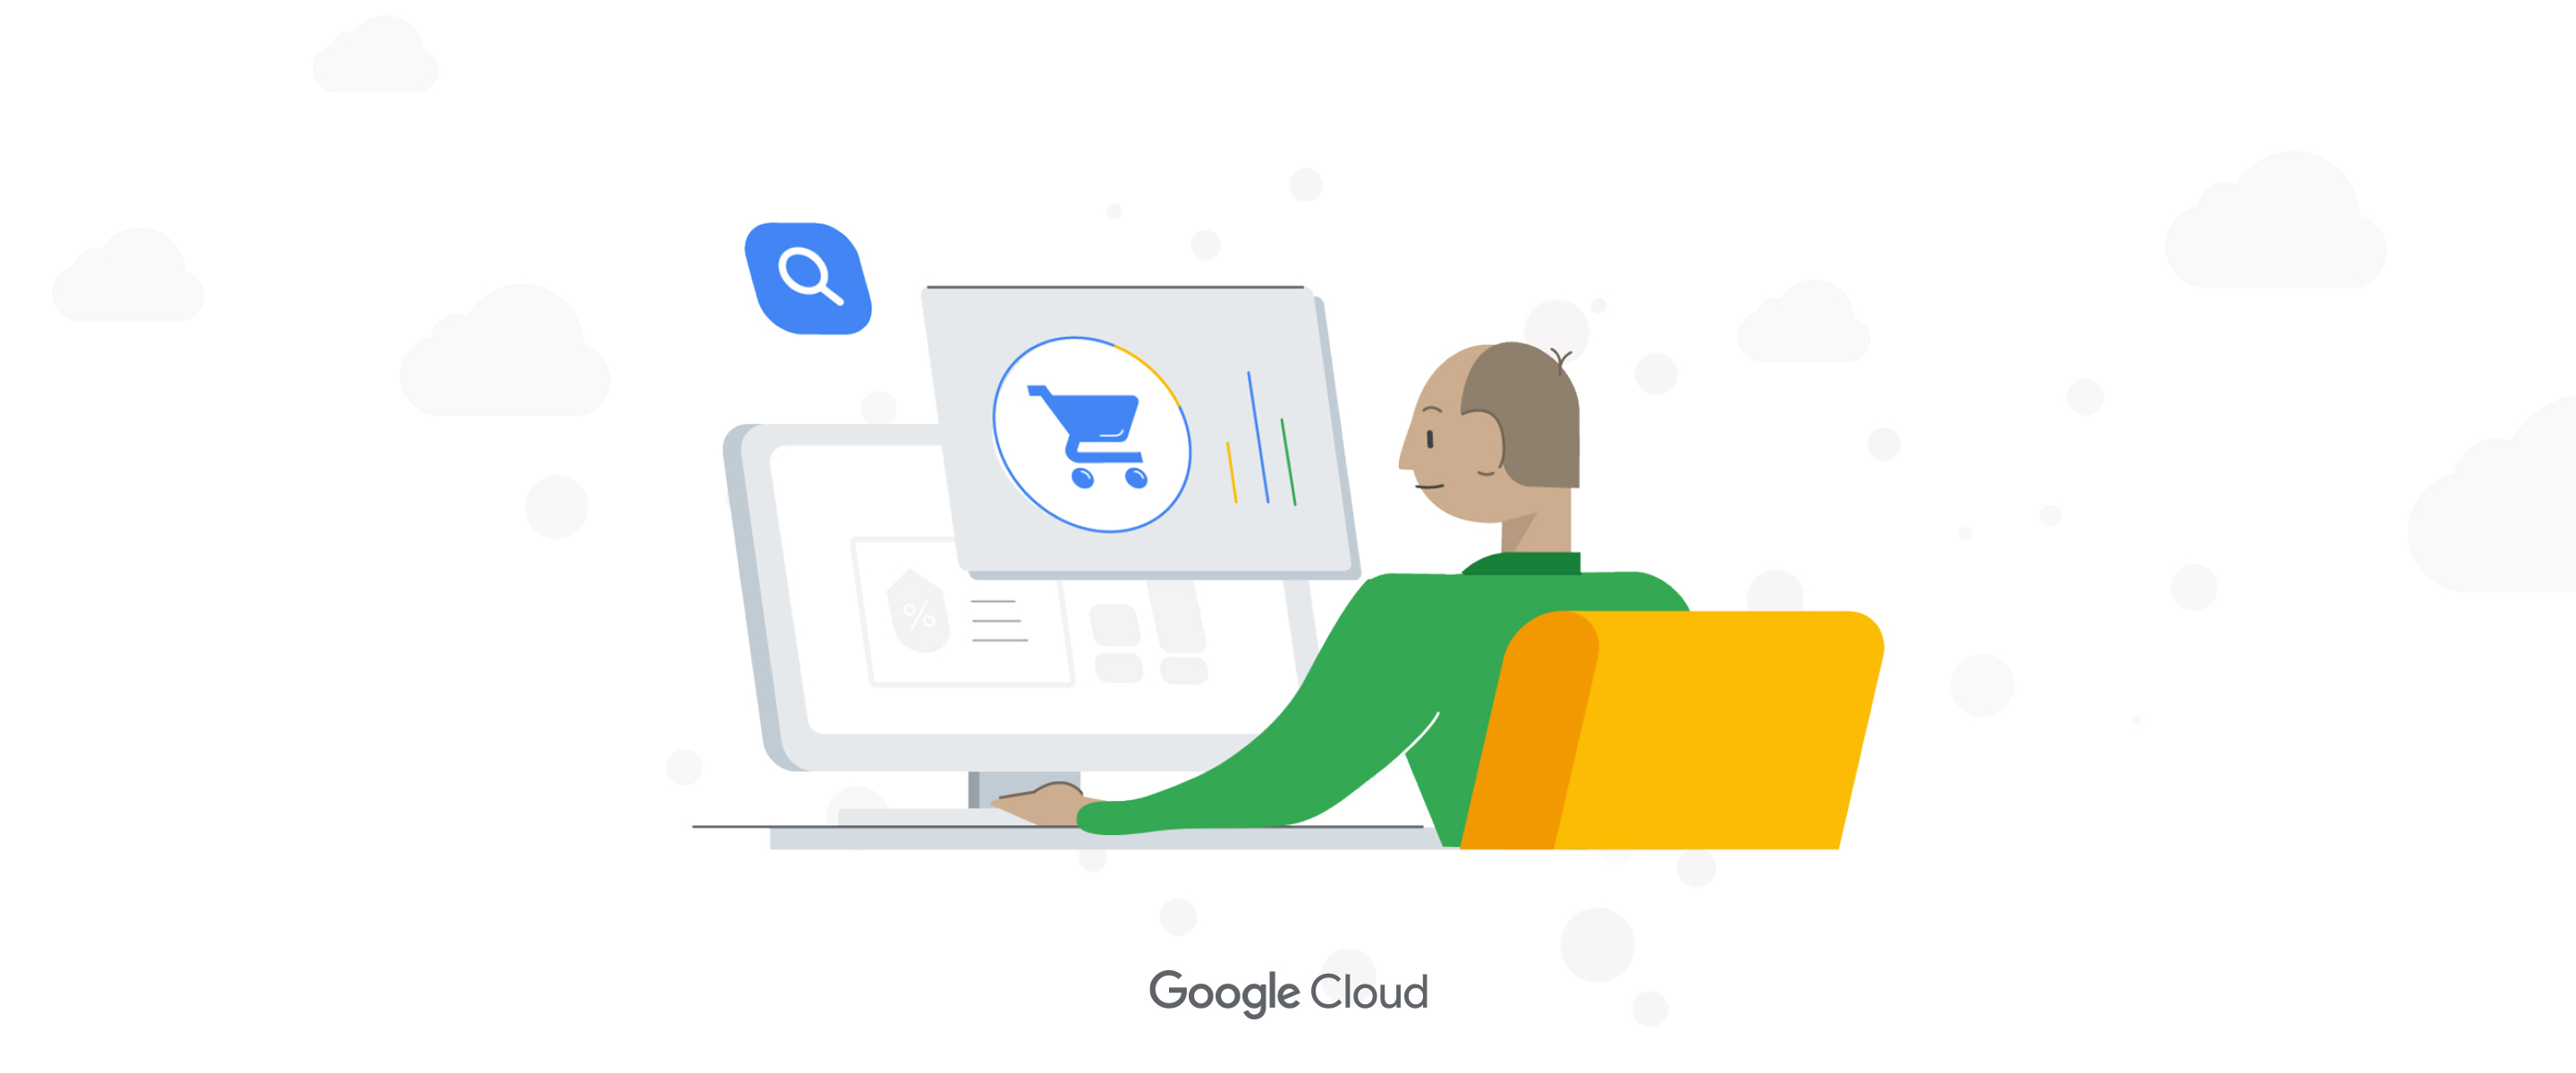 IKEA Retail (Ingka Group) increases Global Average Order Value for eCommerce by 2% with Recommendations AI